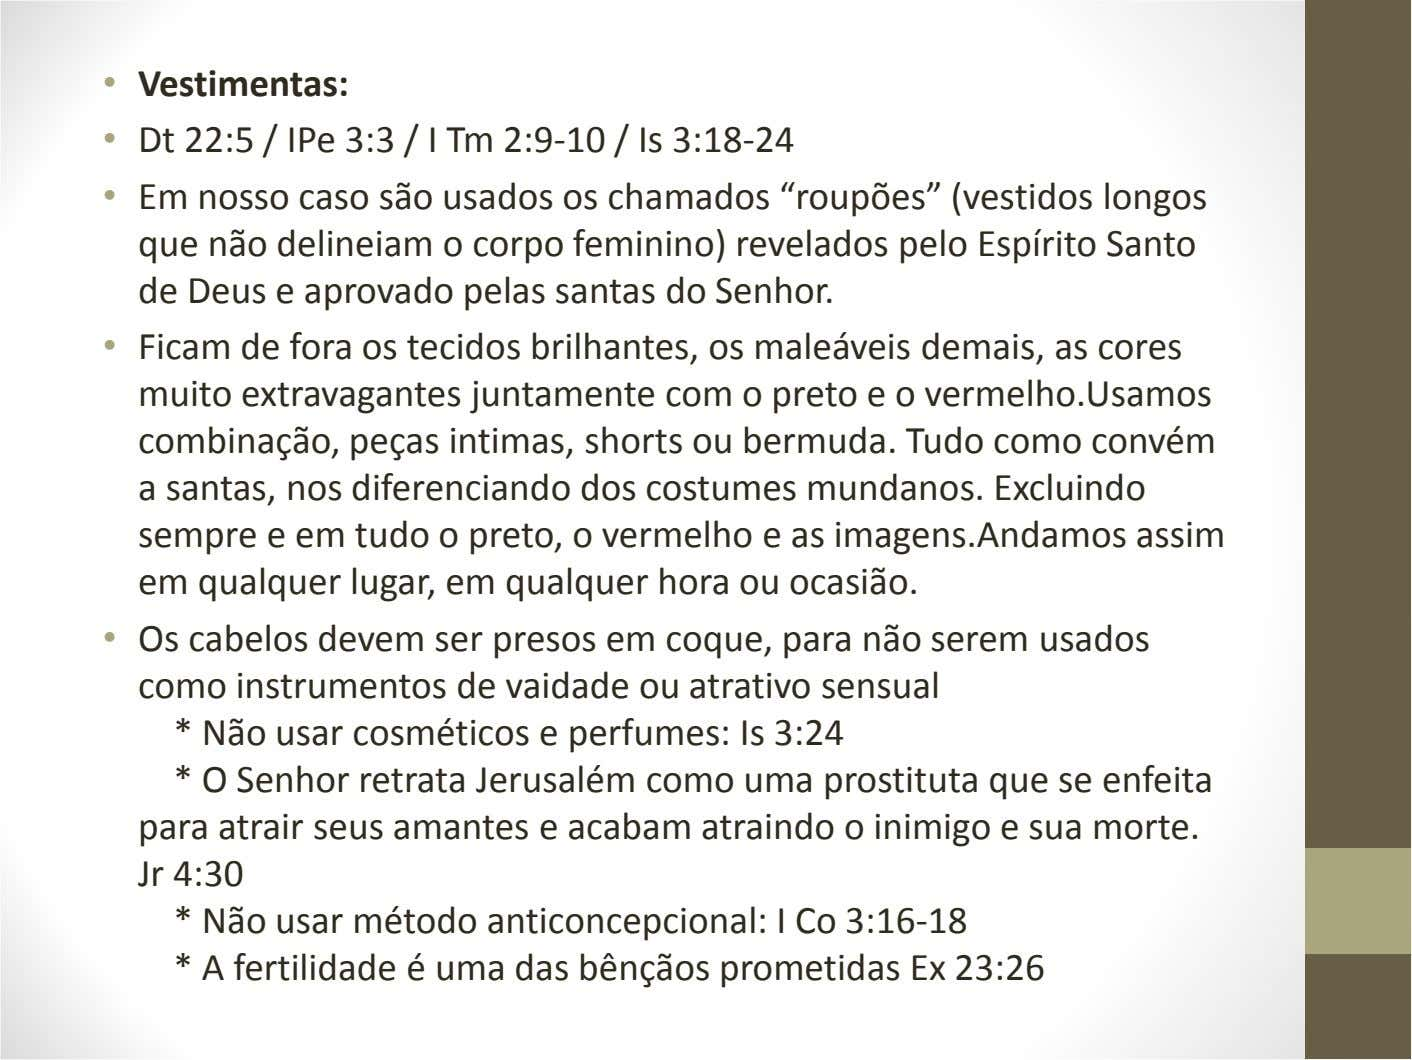 • Vestimentas: • Dt 22:5 / IPe 3:3 / I Tm 2:9-10 / Is 3:18-24